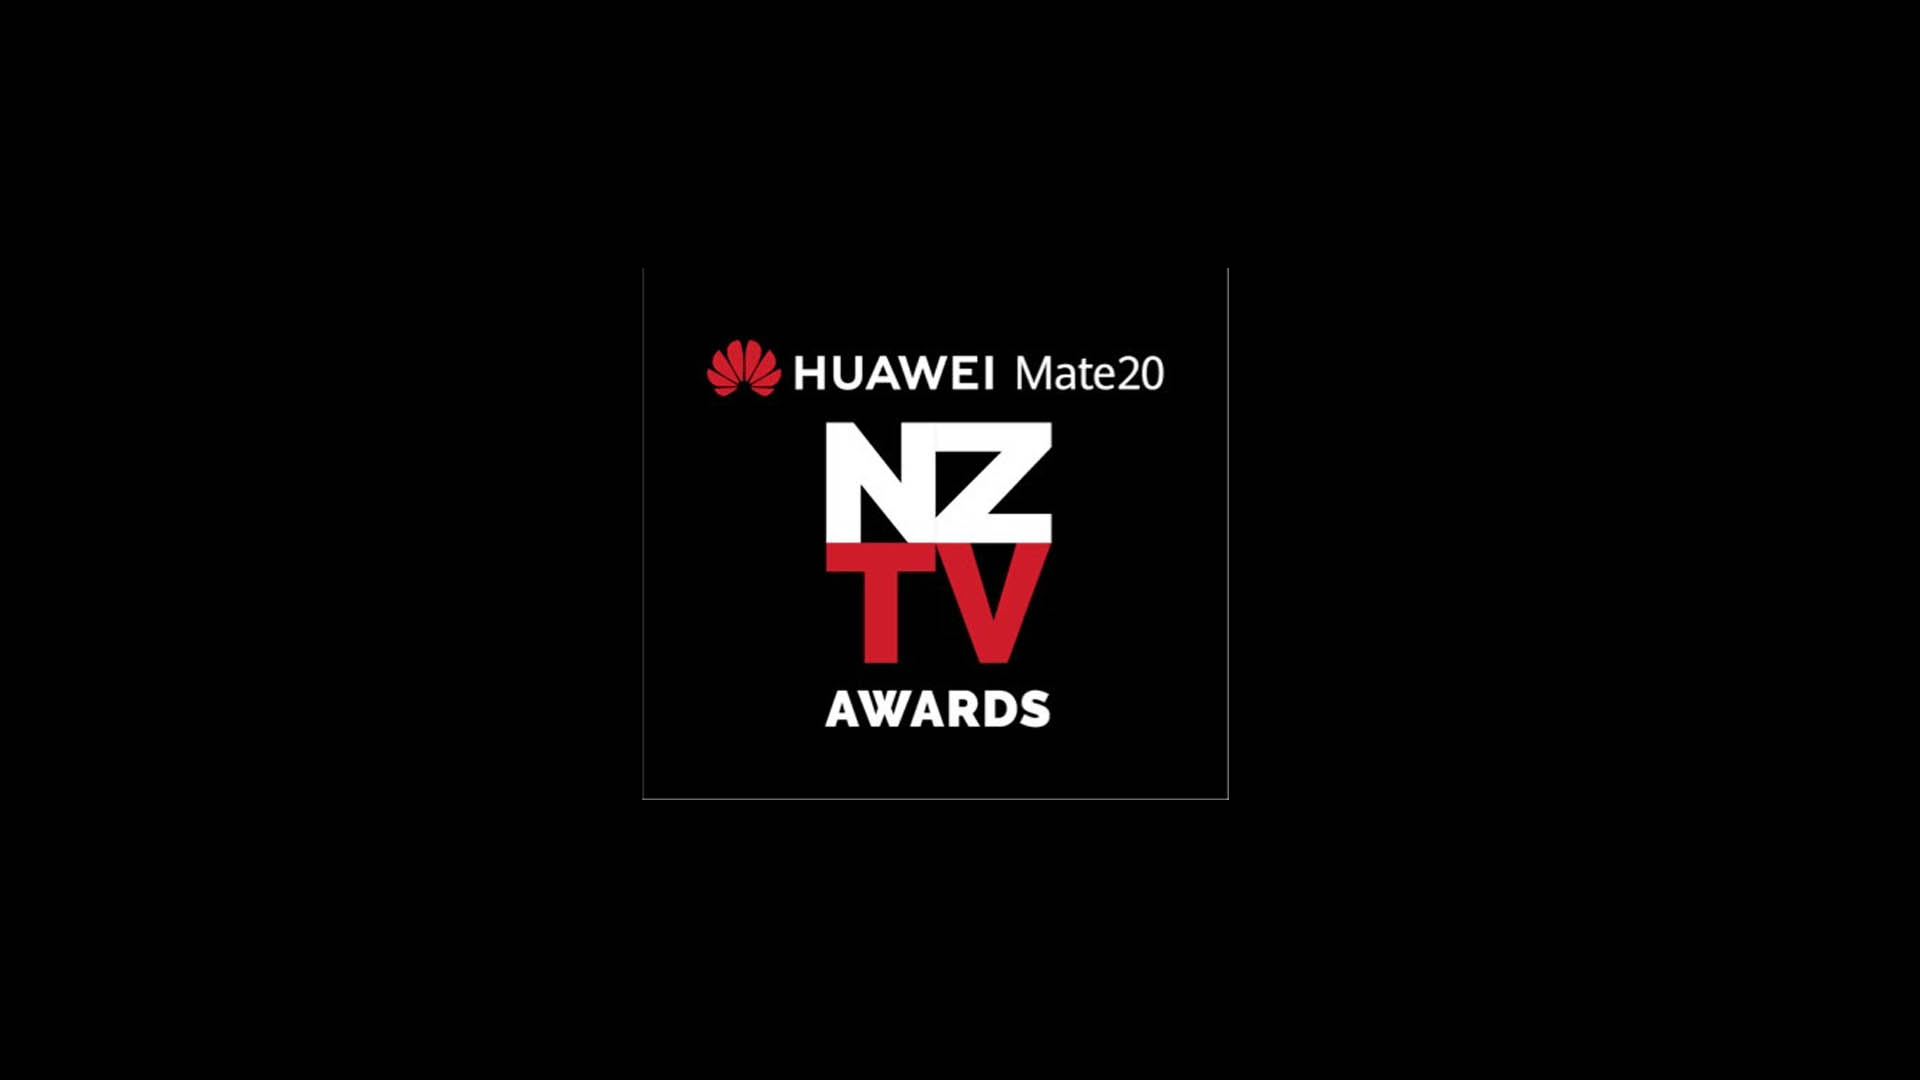 NZ TV Awards